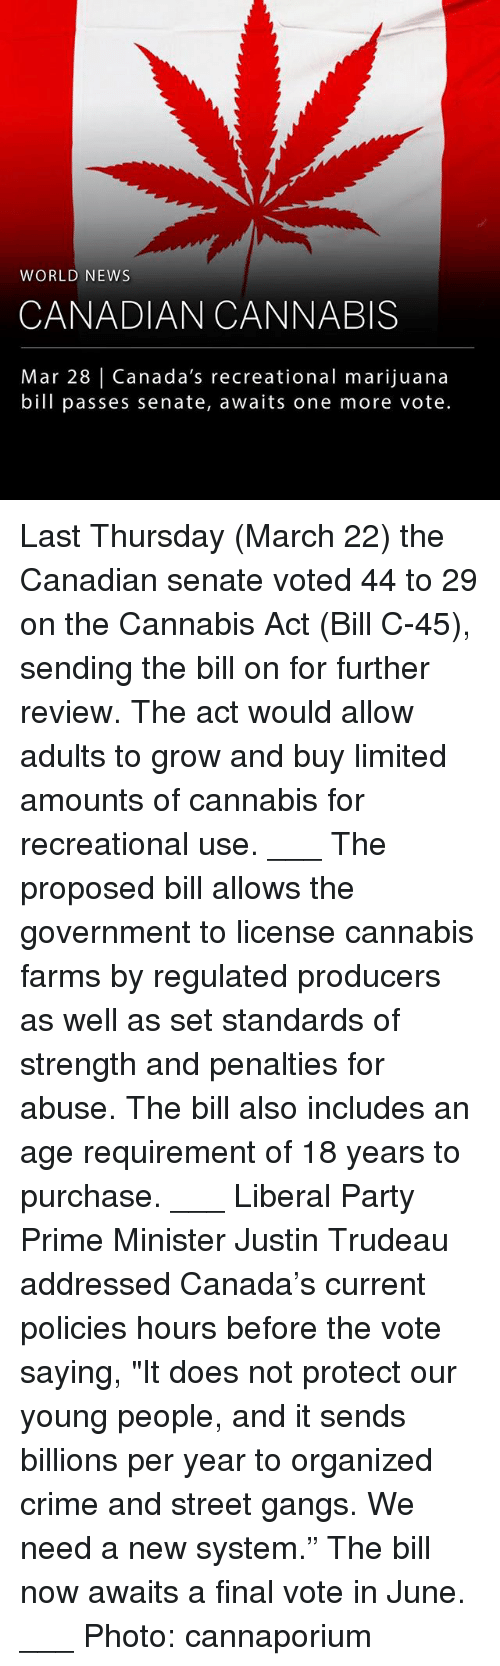 """Crime, Memes, and News: WORLD NEWS  CANADIAN CANNABIS  Mar 28   Canada's recreational marijuana  bill passes senate, awaits one more vote Last Thursday (March 22) the Canadian senate voted 44 to 29 on the Cannabis Act (Bill C-45), sending the bill on for further review. The act would allow adults to grow and buy limited amounts of cannabis for recreational use. ___ The proposed bill allows the government to license cannabis farms by regulated producers as well as set standards of strength and penalties for abuse. The bill also includes an age requirement of 18 years to purchase. ___ Liberal Party Prime Minister Justin Trudeau addressed Canada's current policies hours before the vote saying, """"It does not protect our young people, and it sends billions per year to organized crime and street gangs. We need a new system."""" The bill now awaits a final vote in June. ___ Photo: cannaporium"""